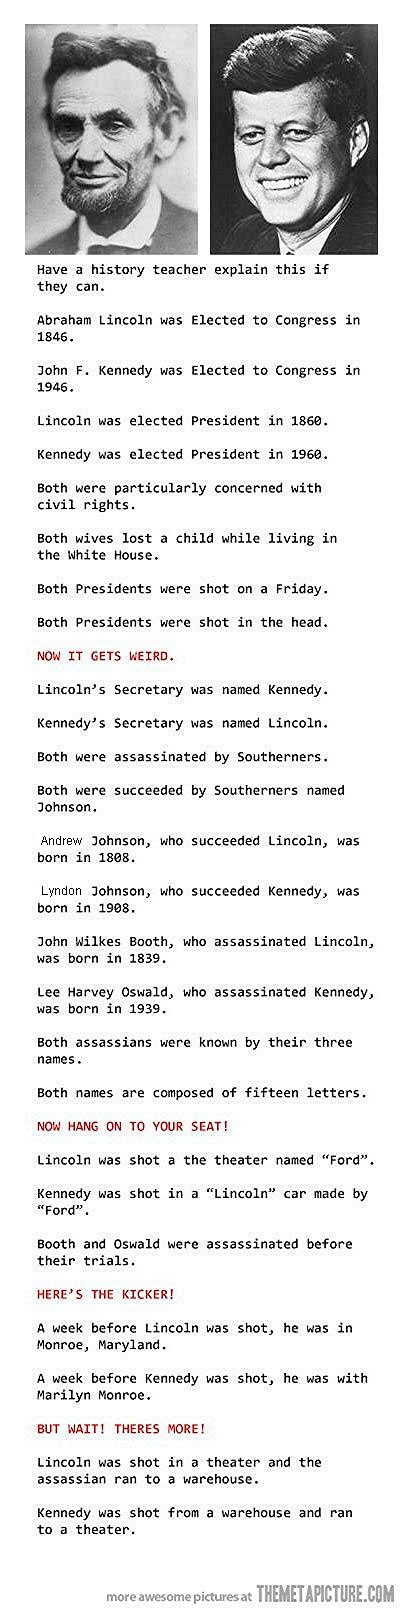 Lincoln & Kennedy - If this is factual this is very odd! I have read this before years ago in a book or magazine.